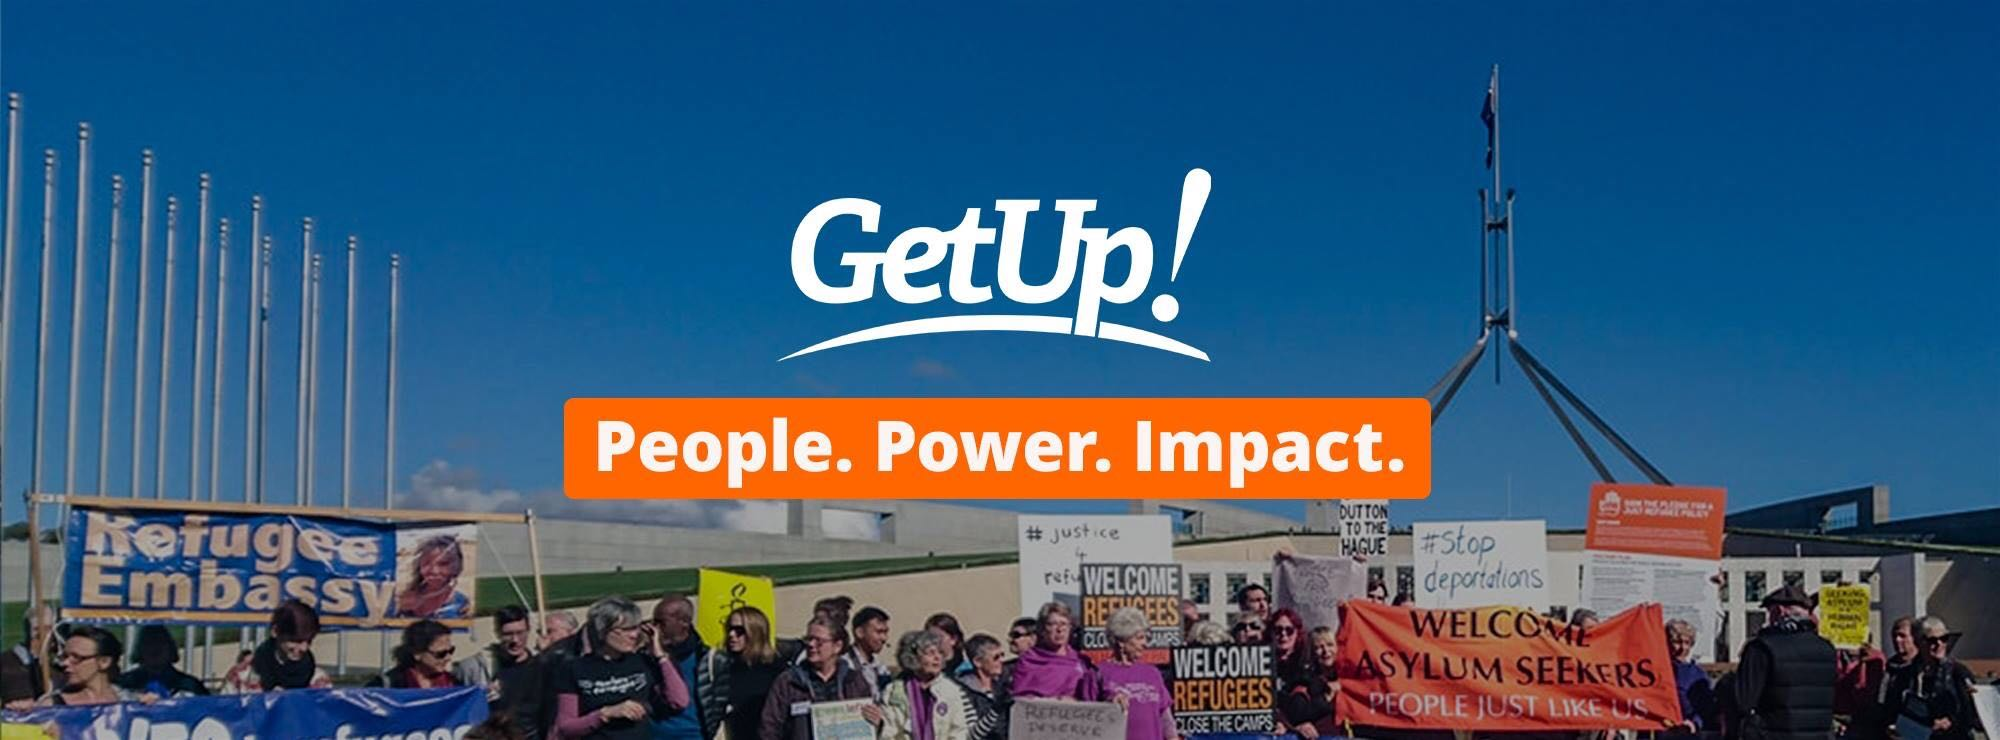 GetUp - People. Power. Impact